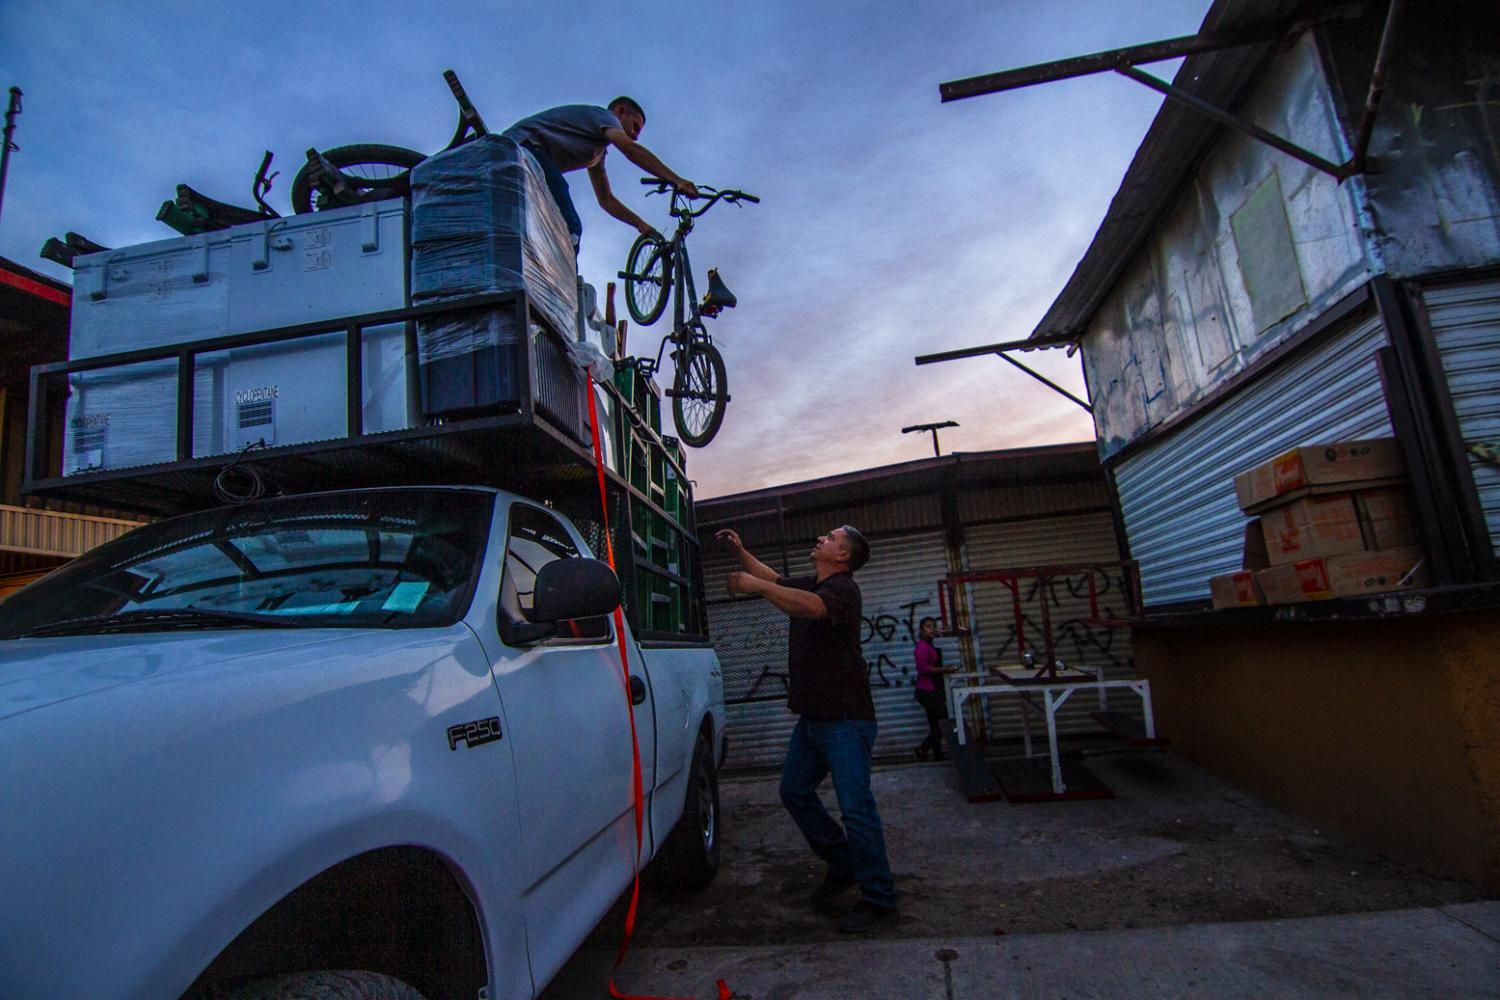 His teenage son, Emilio, hands him a bicycle from the top of a recent load of used Arizona goods that he brought back to the Hector Espino Tianguis.